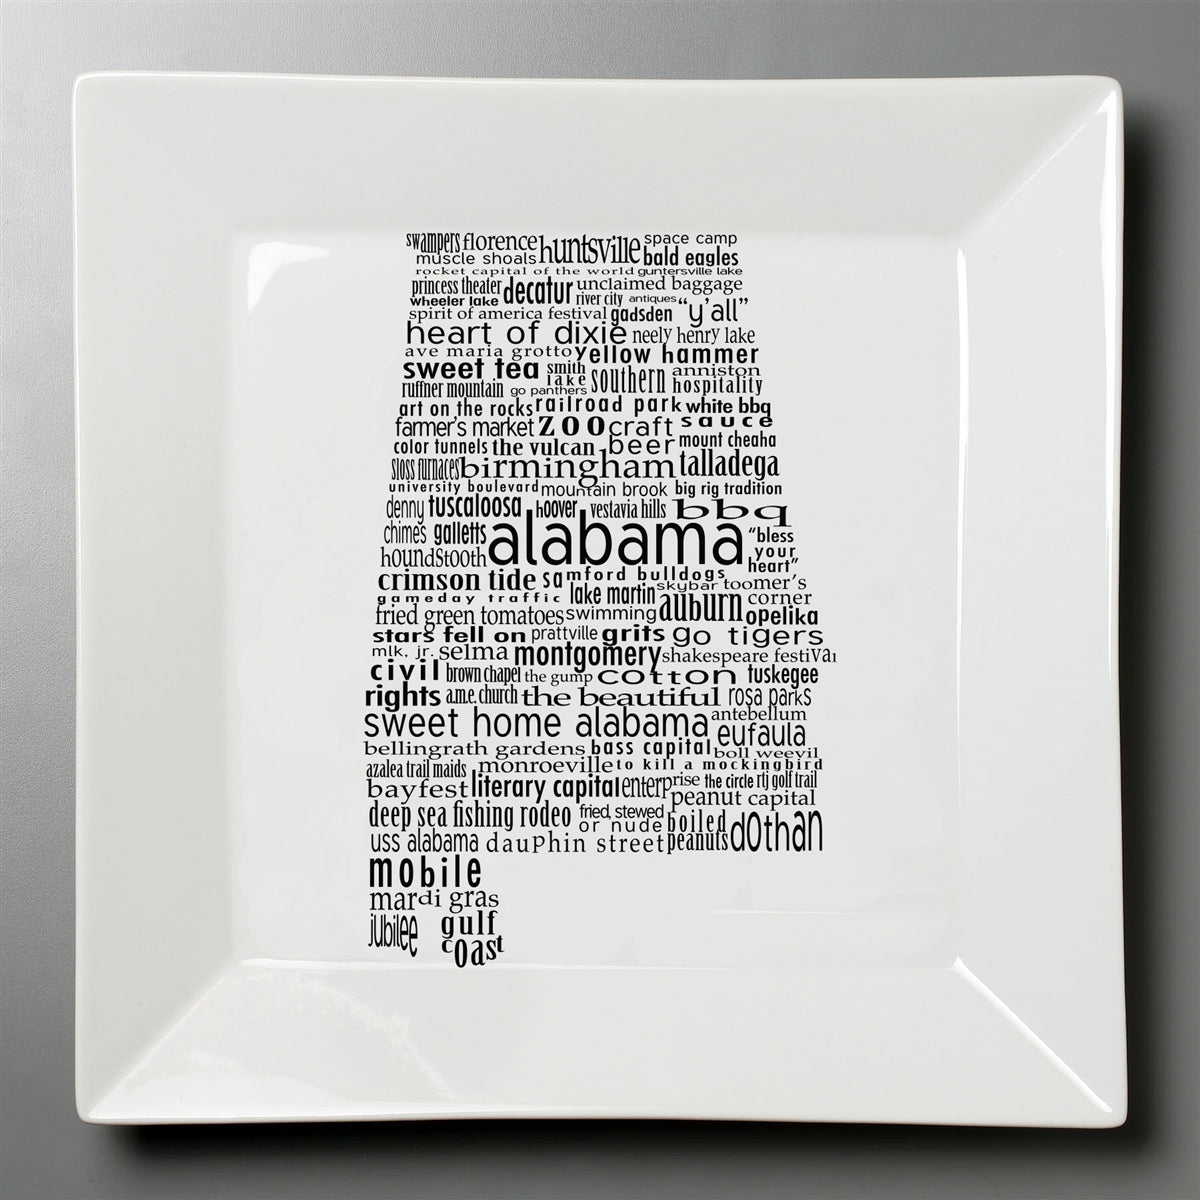 Alabama Dish - Large Square Plate